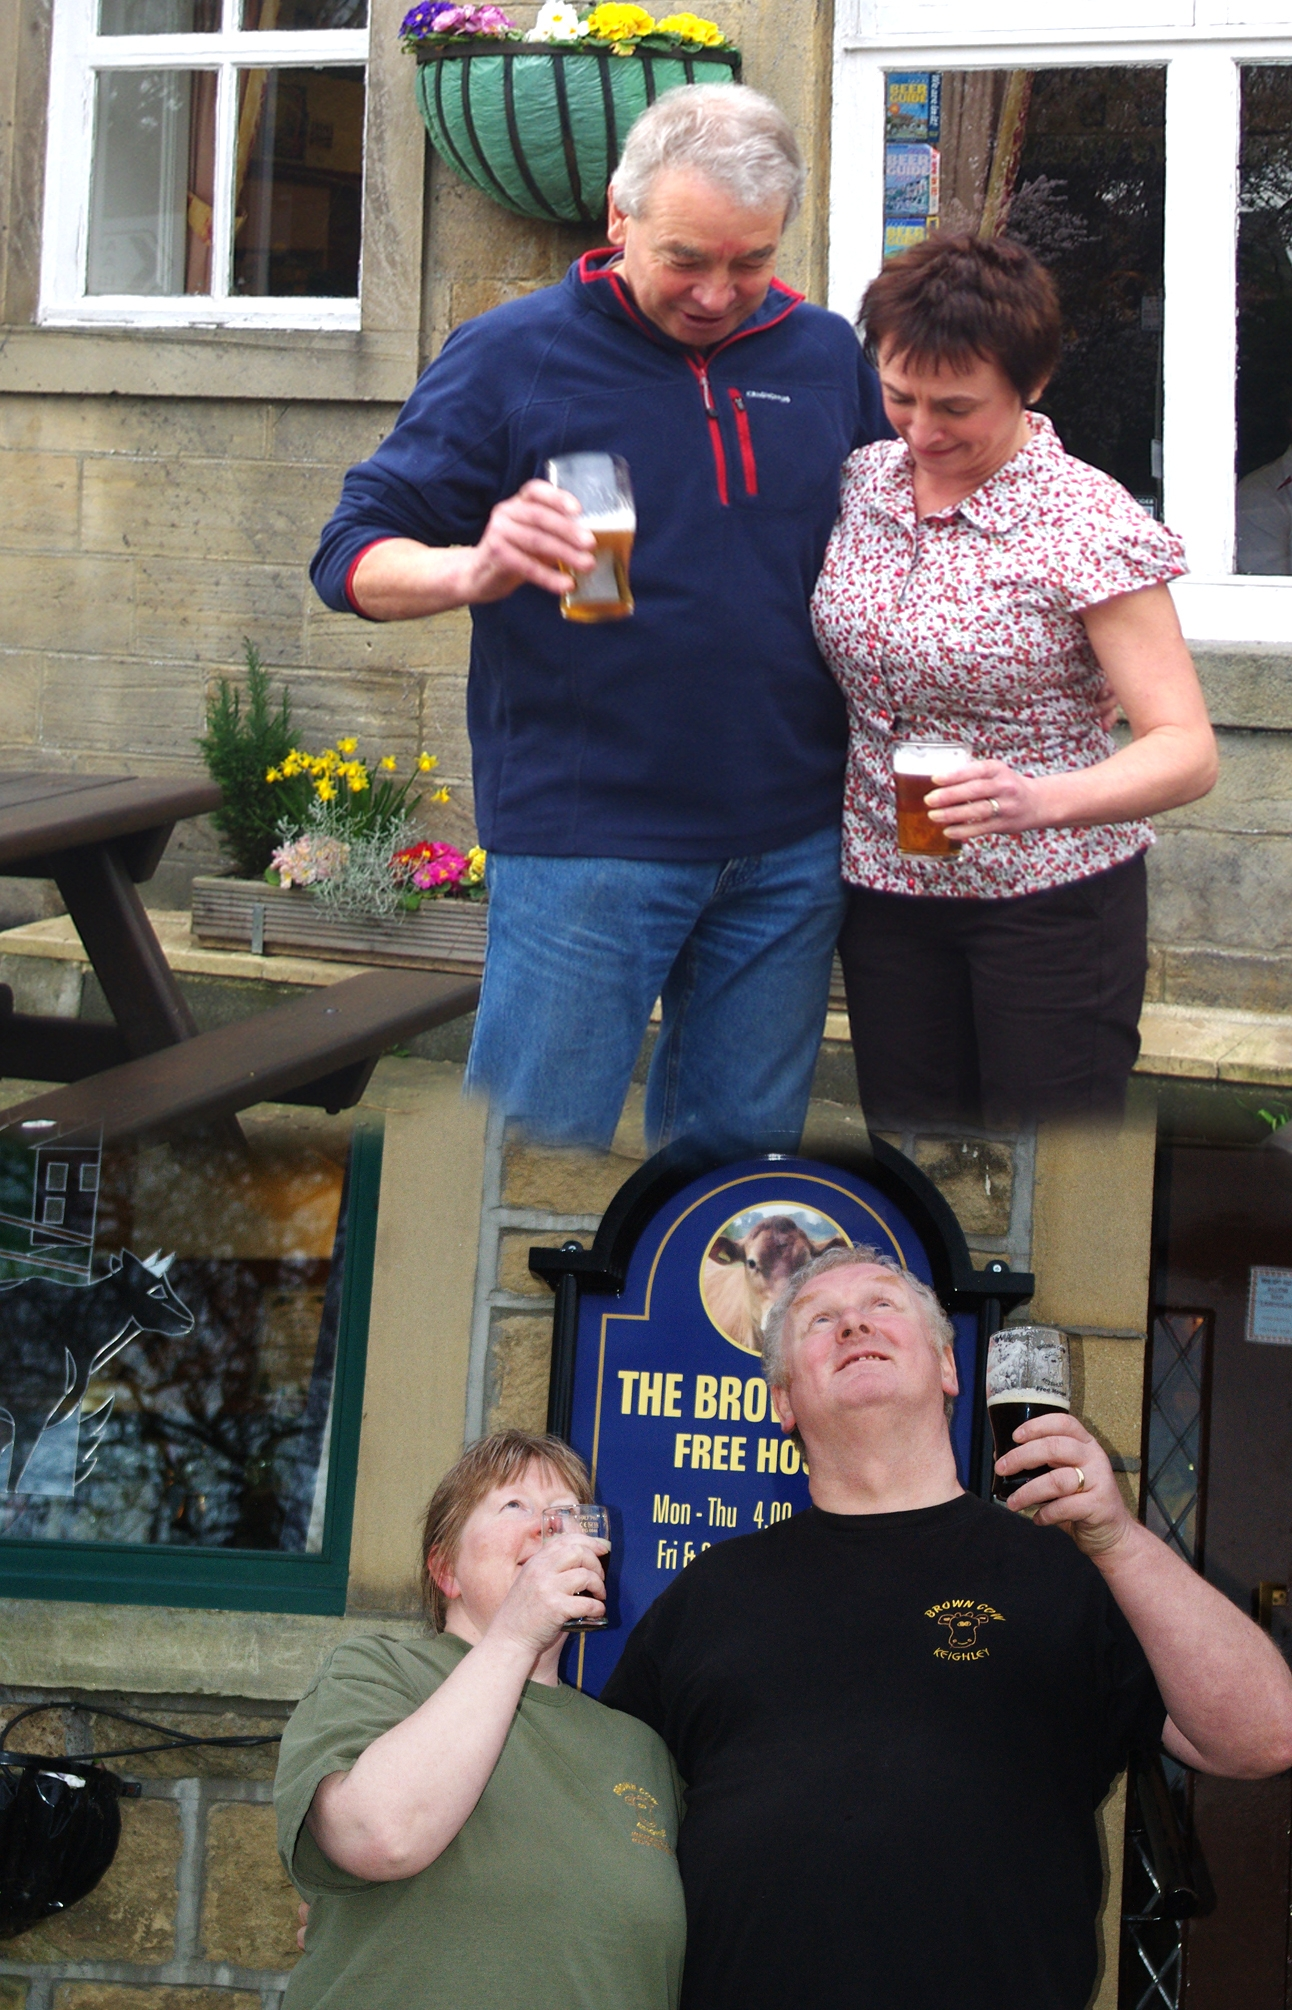 Francis Huggins and Lisa Keeley, top, of the King's Arms, and below, Carole Taylor-Smith and Barry Smith, of the Brown Cow celebrate their joint win in the CAMRA Pub of the Year